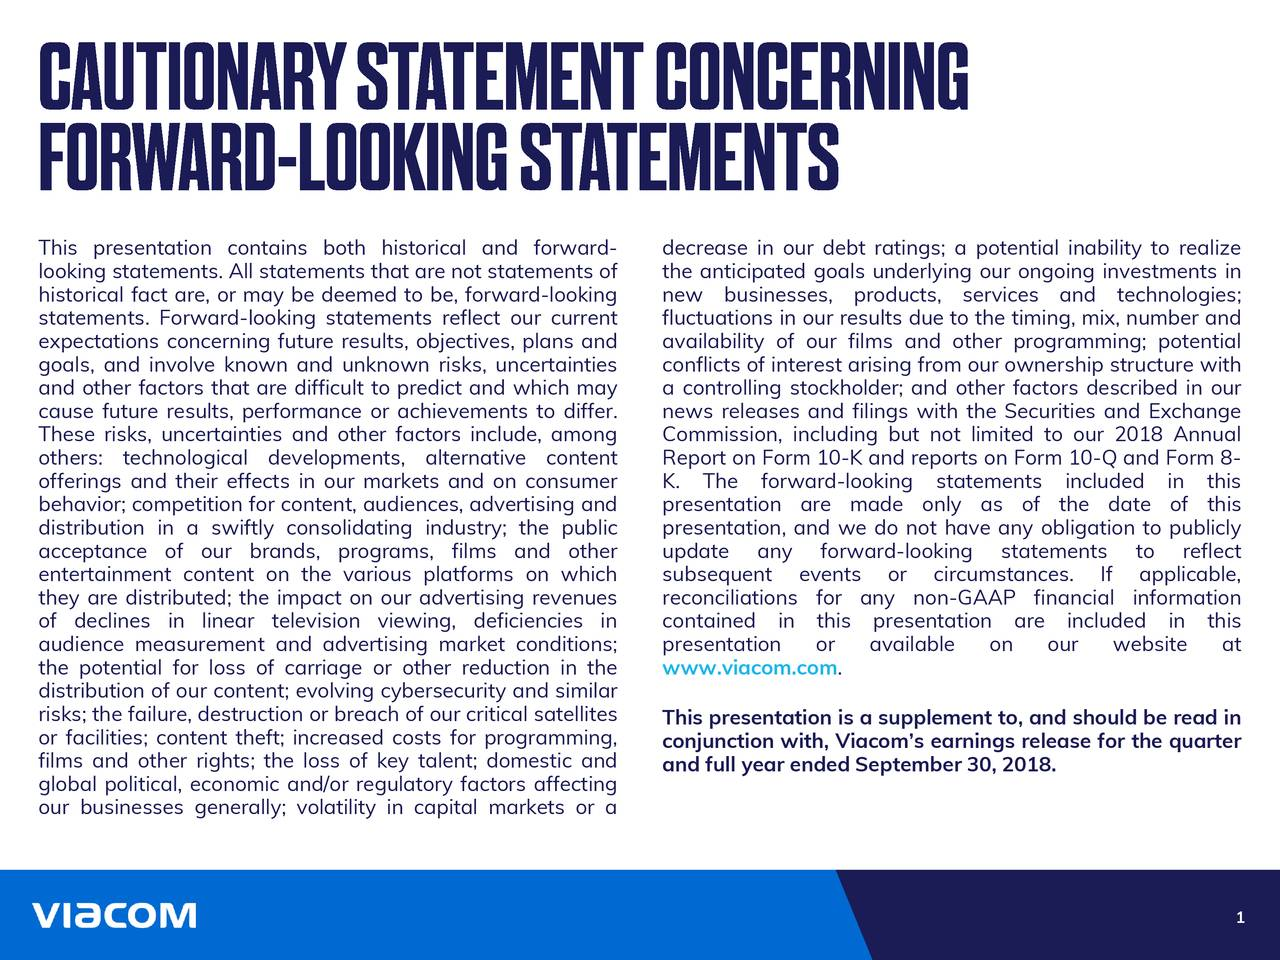 looking statements. All statements that are not statements of the anticipated goals underlying our ongoing investments in historical fact are, or may be deemed to be, forward-looking new businesses, products, services and technologies; statements. Forward-looking statements reflect our current fluctuations in our results due to the timing, mix, number and expectations concerning future results, objectives, plans and availability of our films and other programming; potential goals, and involve known and unknown risks, uncertainties conflicts of interest arising from our ownership structure with and other factors that are difficult to predict and which may a controlling stockholder; and other factors described in our cause future results, performance or achievements to differ. news releases and filings with the Securities and Exchange These risks, uncertainties and other factors include, among Commission, including but not limited to our 2018 Annual others: technological developments, alternative content Report on Form 10-K and reports on Form 10-Q and Form 8- offerings and their effects in our markets and on consumer K. The forward-looking statements included in this behavior; competition for content, audiences, advertising and presentation are made only as of the date of this distribution in a swiftly consolidating industry; the public presentation, and we do not have any obligation to publicly acceptance of our brands, programs, films and other update any forward-looking statements to reflect entertainment content on the various platforms on which subsequent events or circumstances. If applicable, they are distributed; the impact on our advertising revenues reconciliations for any non-GAAP financial information of declines in linear television viewing, deficiencies in contained in this presentation are included in this audience measurement and advertising market conditions; presentation or available on our website at the potential for loss of carriage or other redu